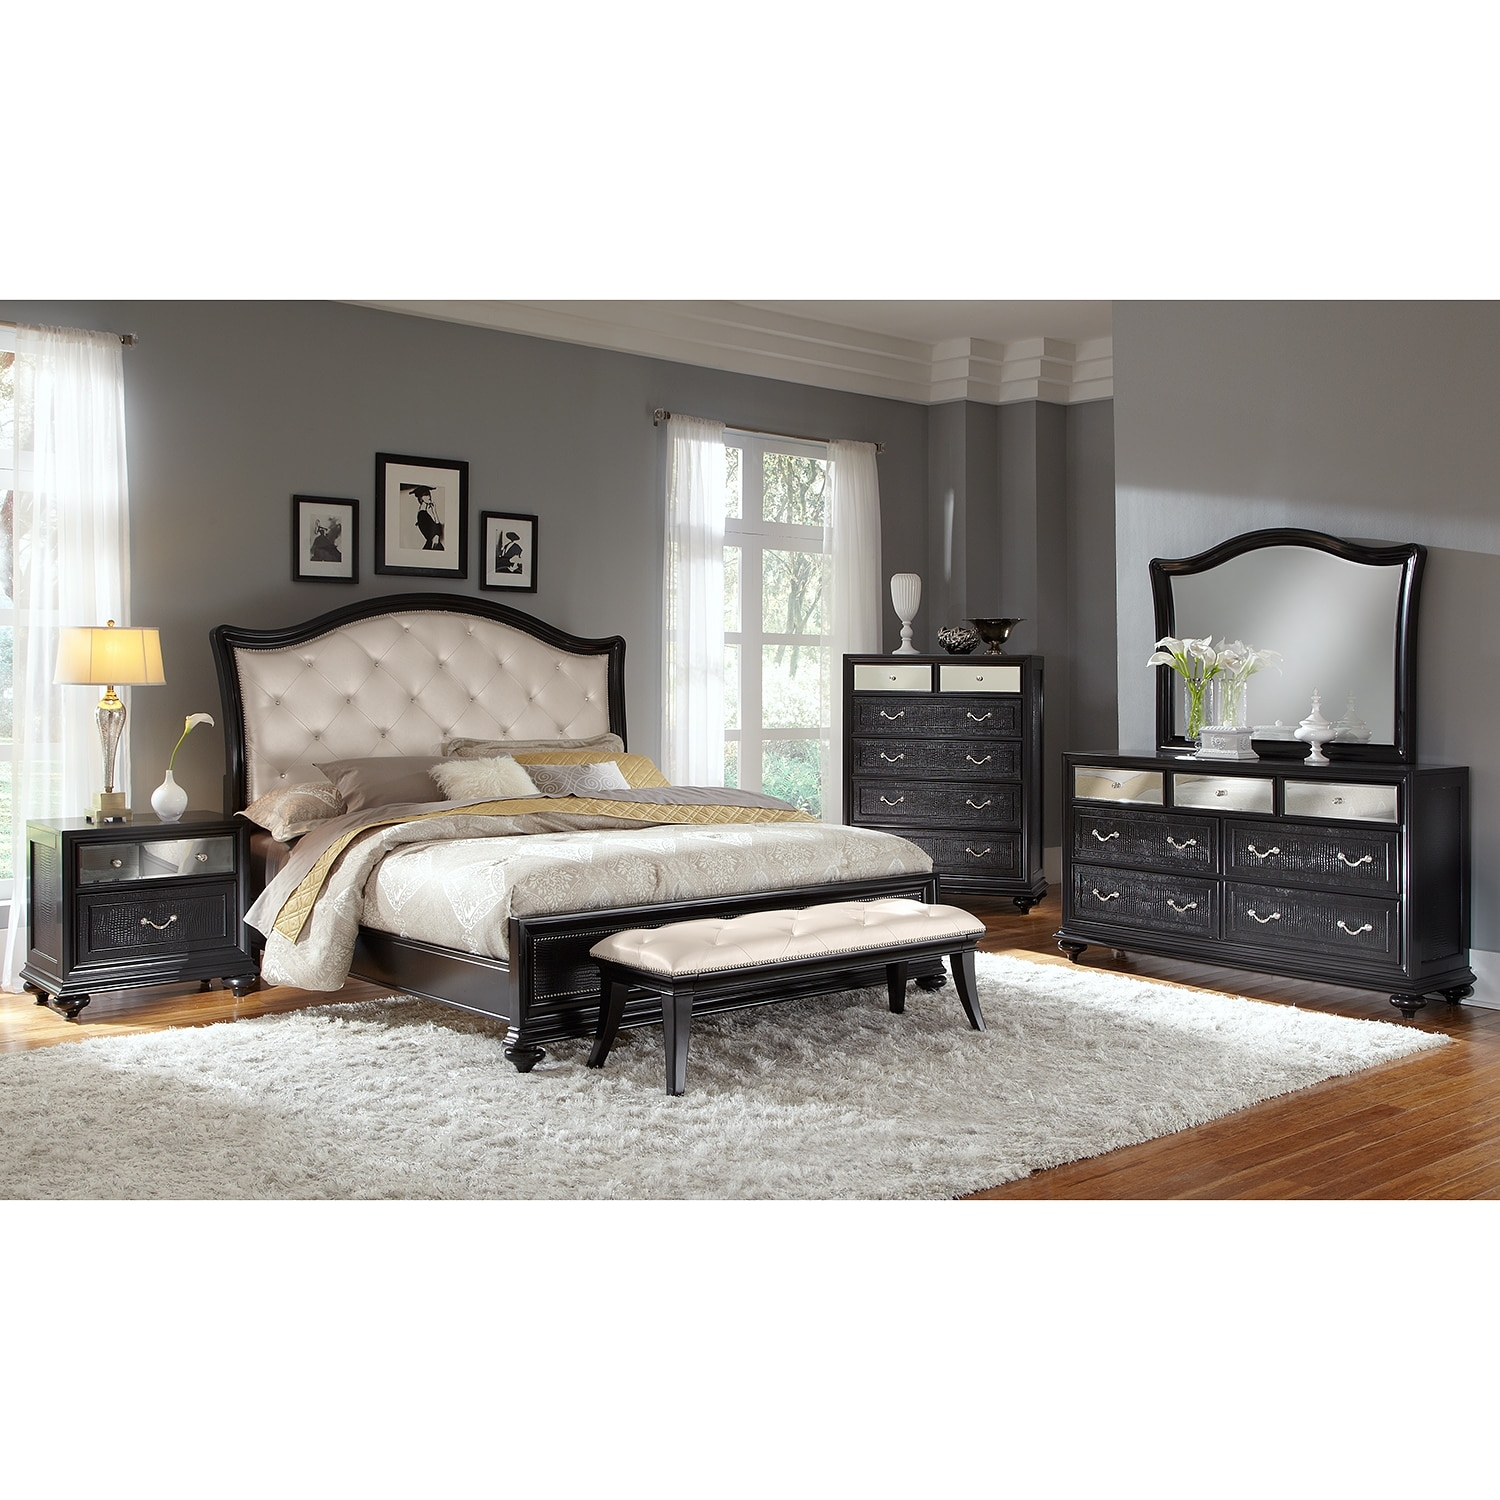 Marilyn queen bed value city furniture for Furniture queen bedroom sets